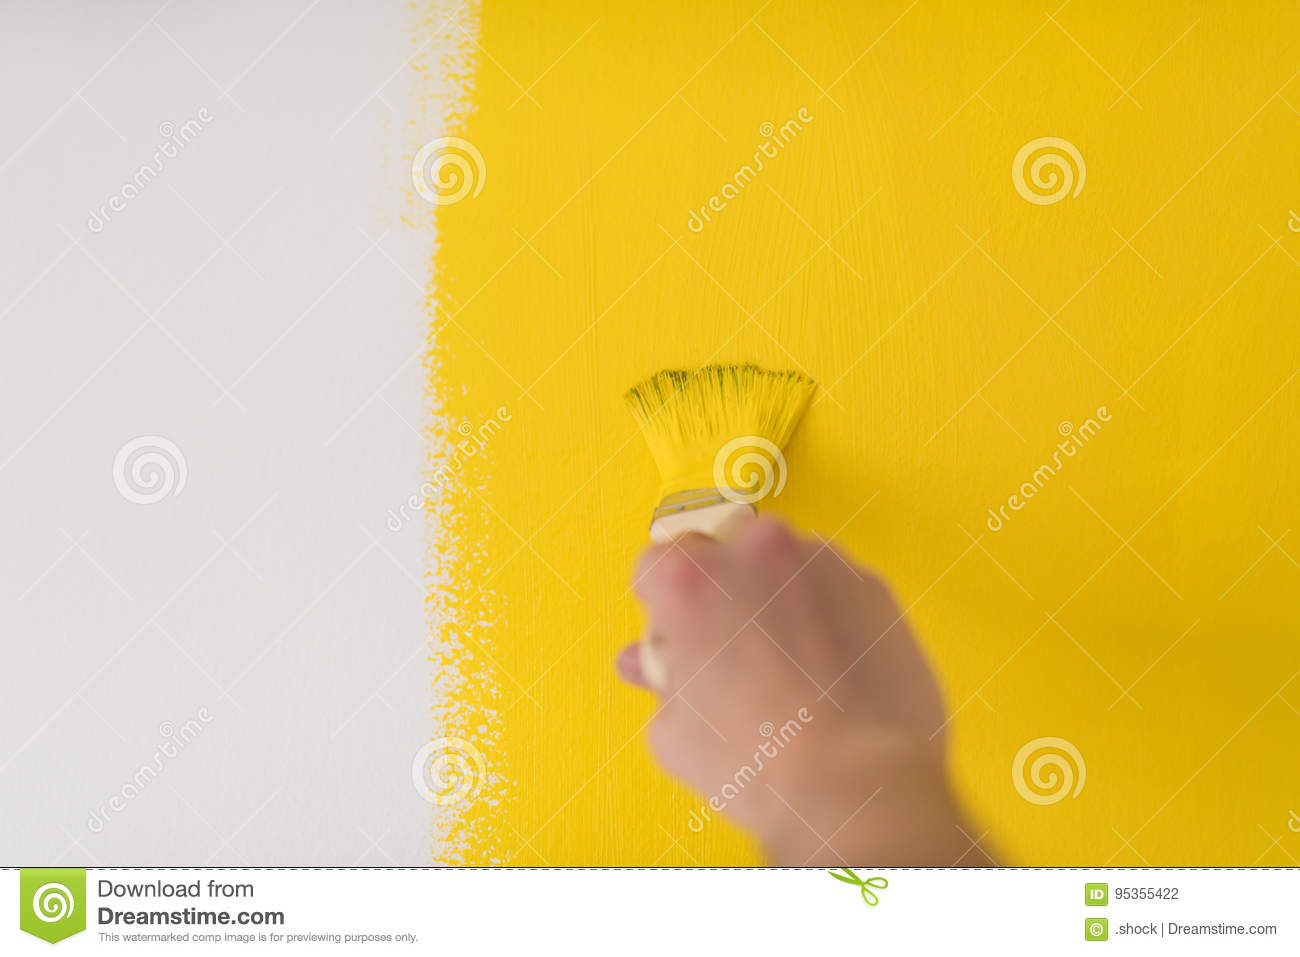 Hand painting wall stock photo. Image of pattern, equipment - 95355422